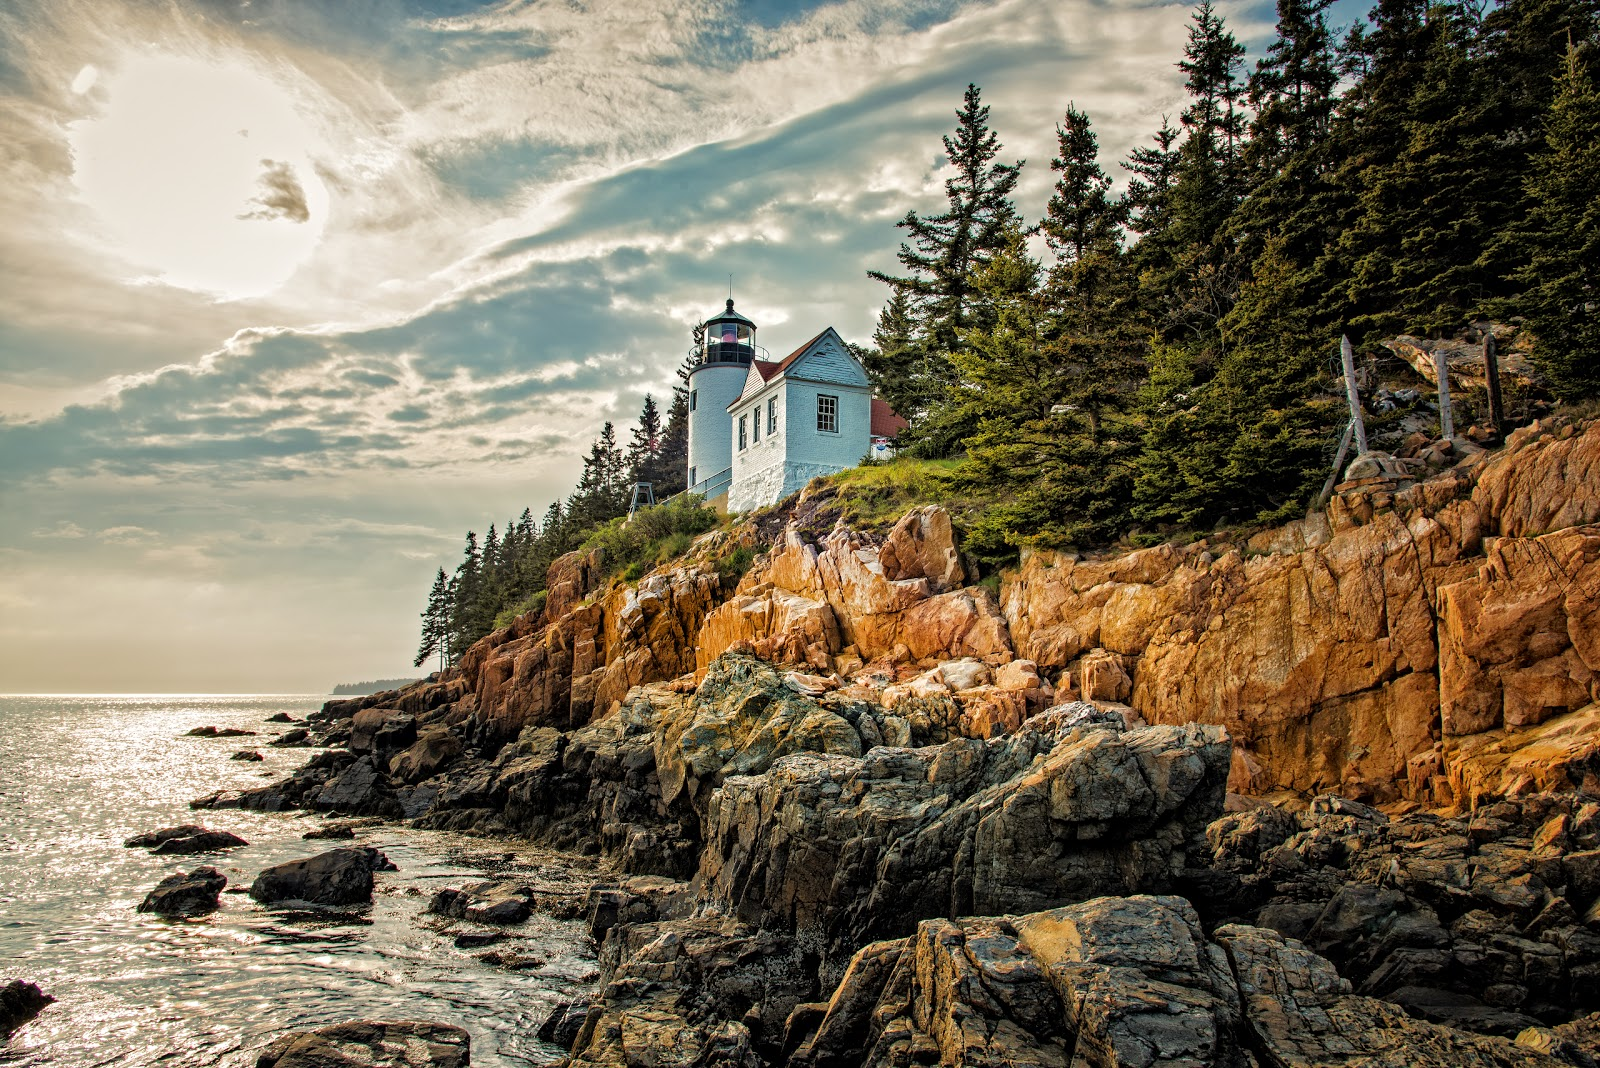 Bass Harbor Headlight (Image ©2015 Ben Sullivan)